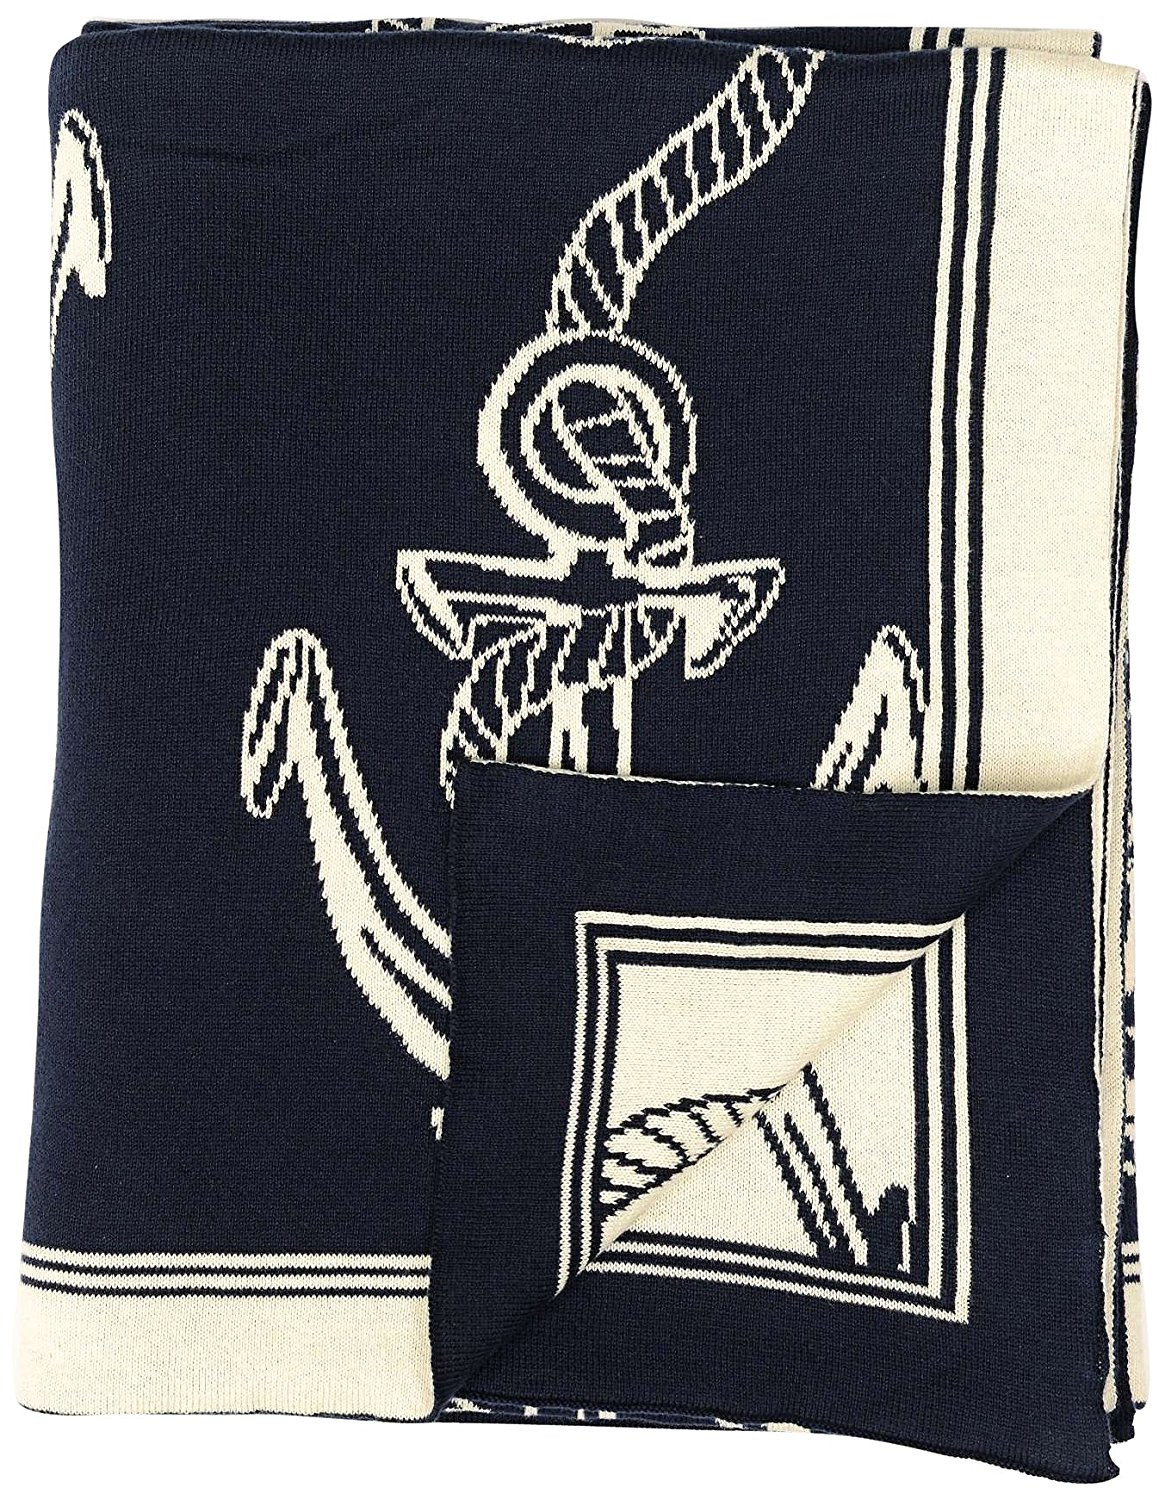 Darzzi Nautical Rope & Anchor Throw Blankets